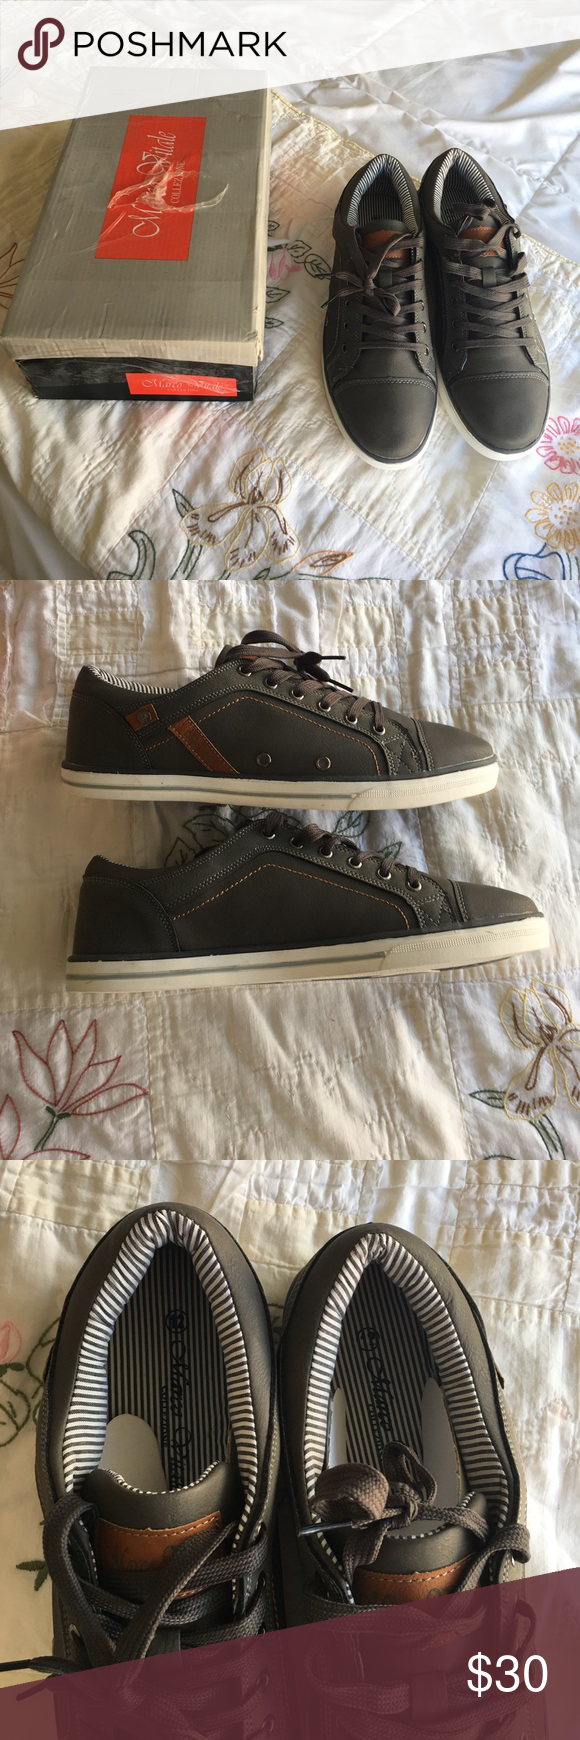 Marco Vitale Men's Sneakers Brand new, gray and brown sneakers. Man-made material. Size 12 Marco Vitale Shoes Sneakers